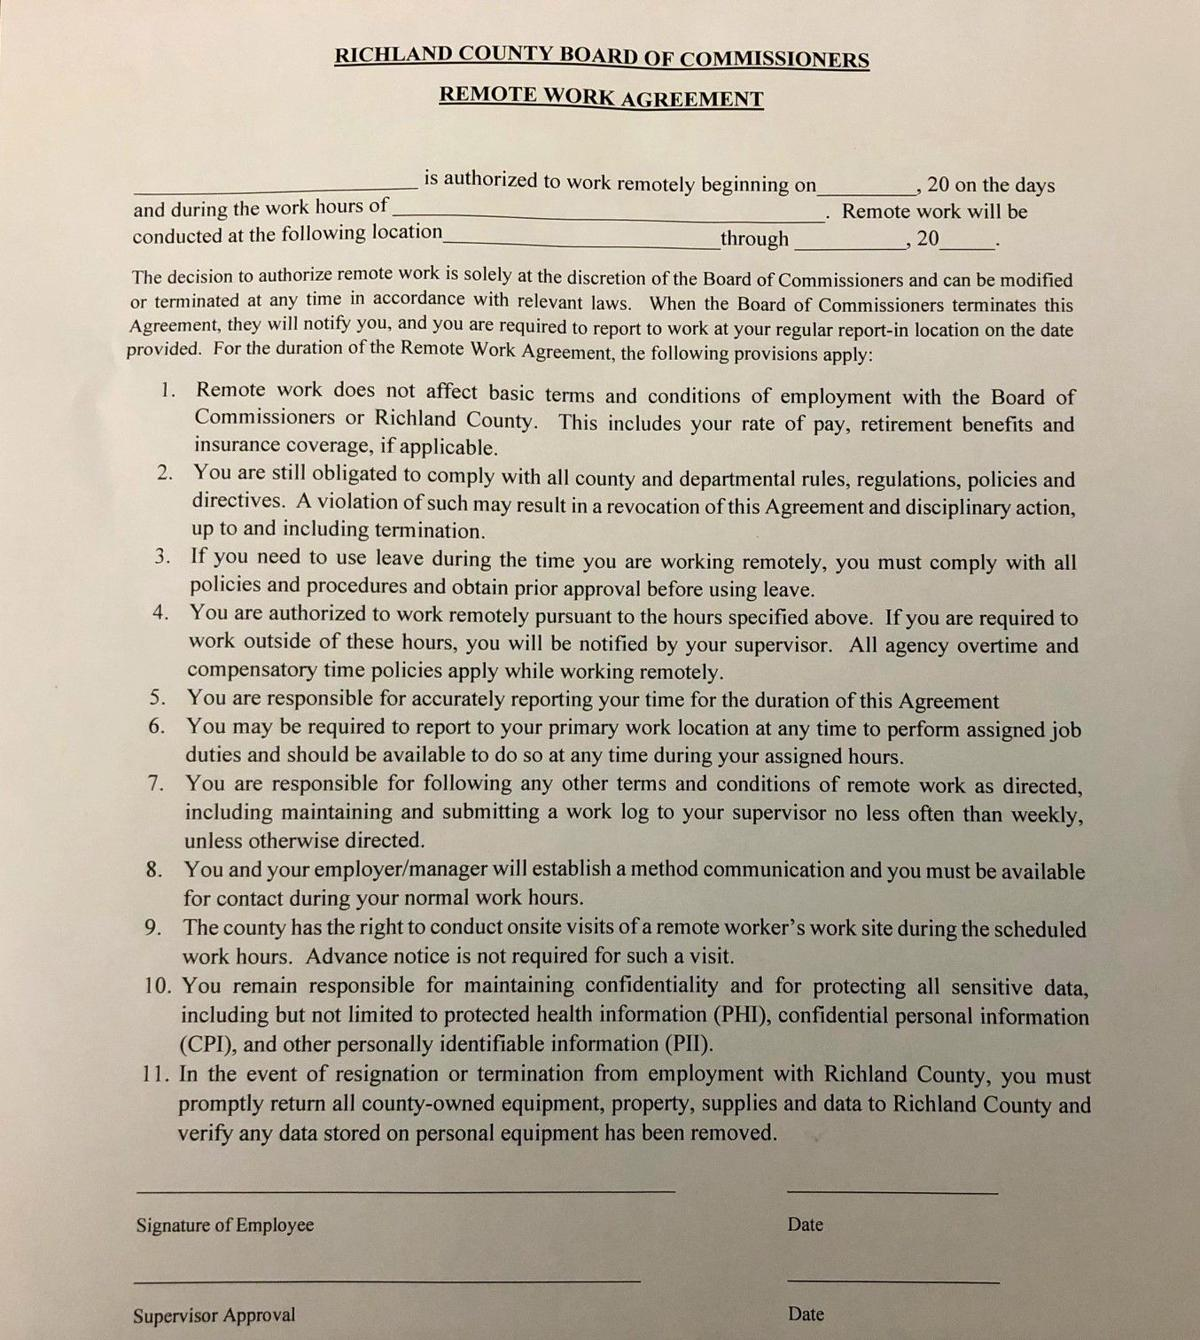 Richland county remote work agreement